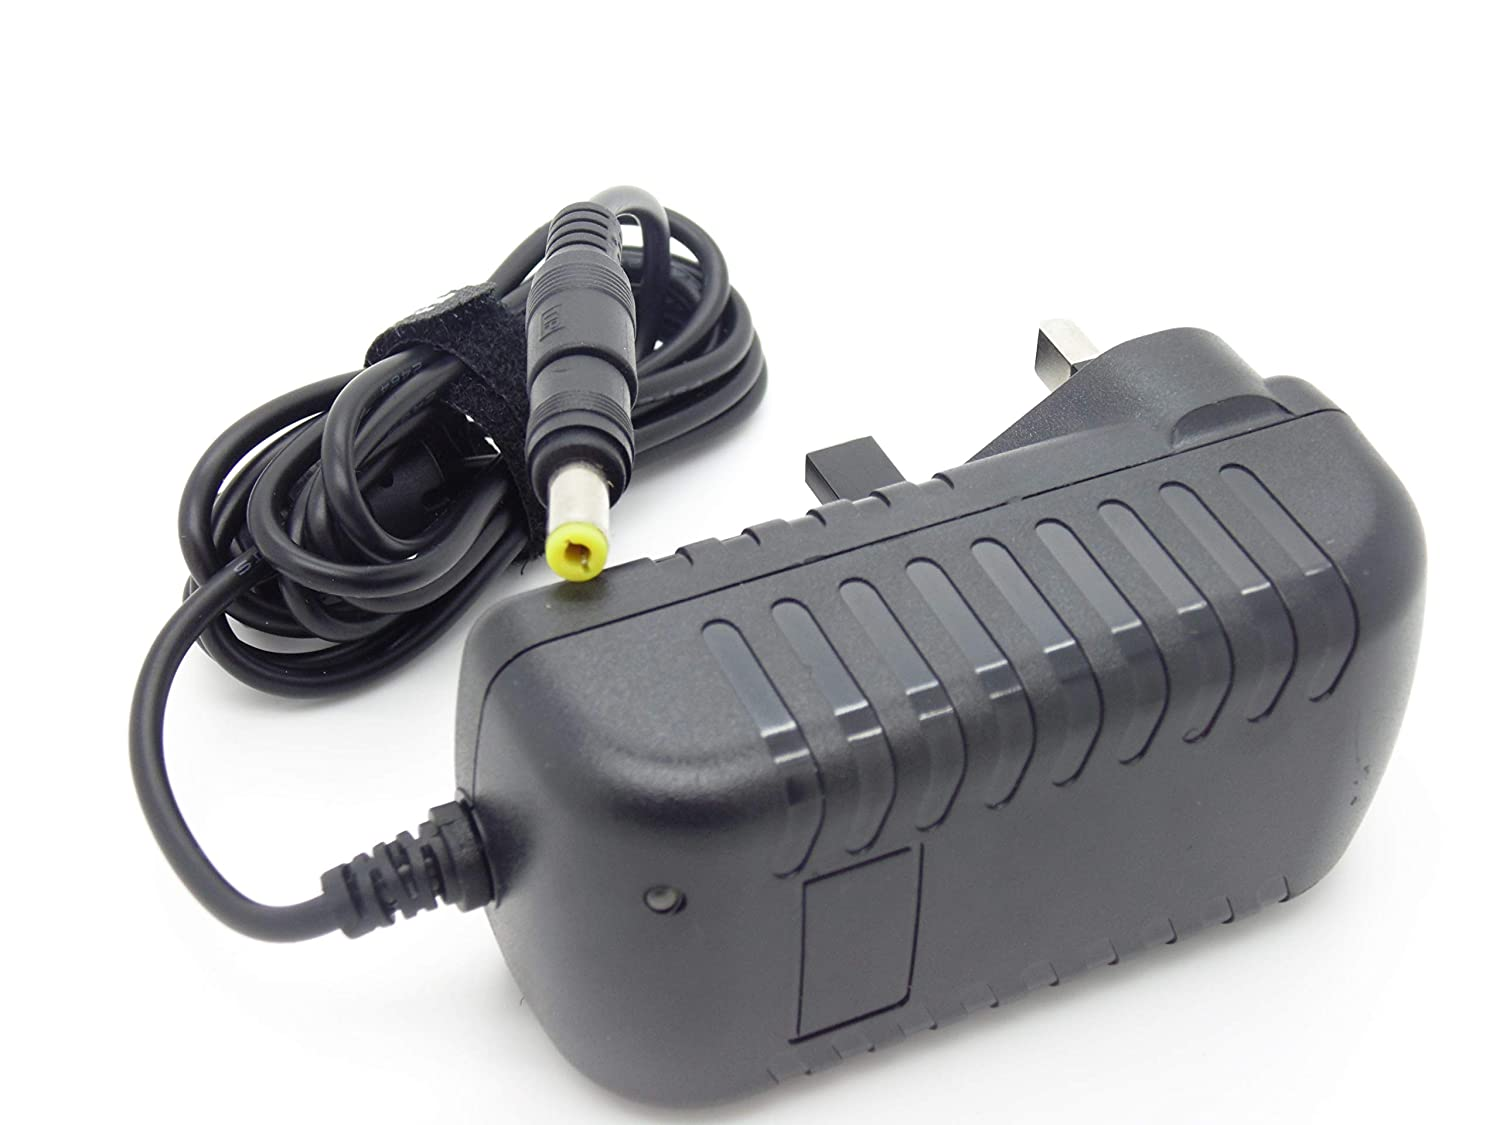 GOOD LEAD 12V MAINS ROLAND EP75 EP77 EP7E KEYBOARD AC ADAPTOR POWER SUPPLY CHARGER PLUG